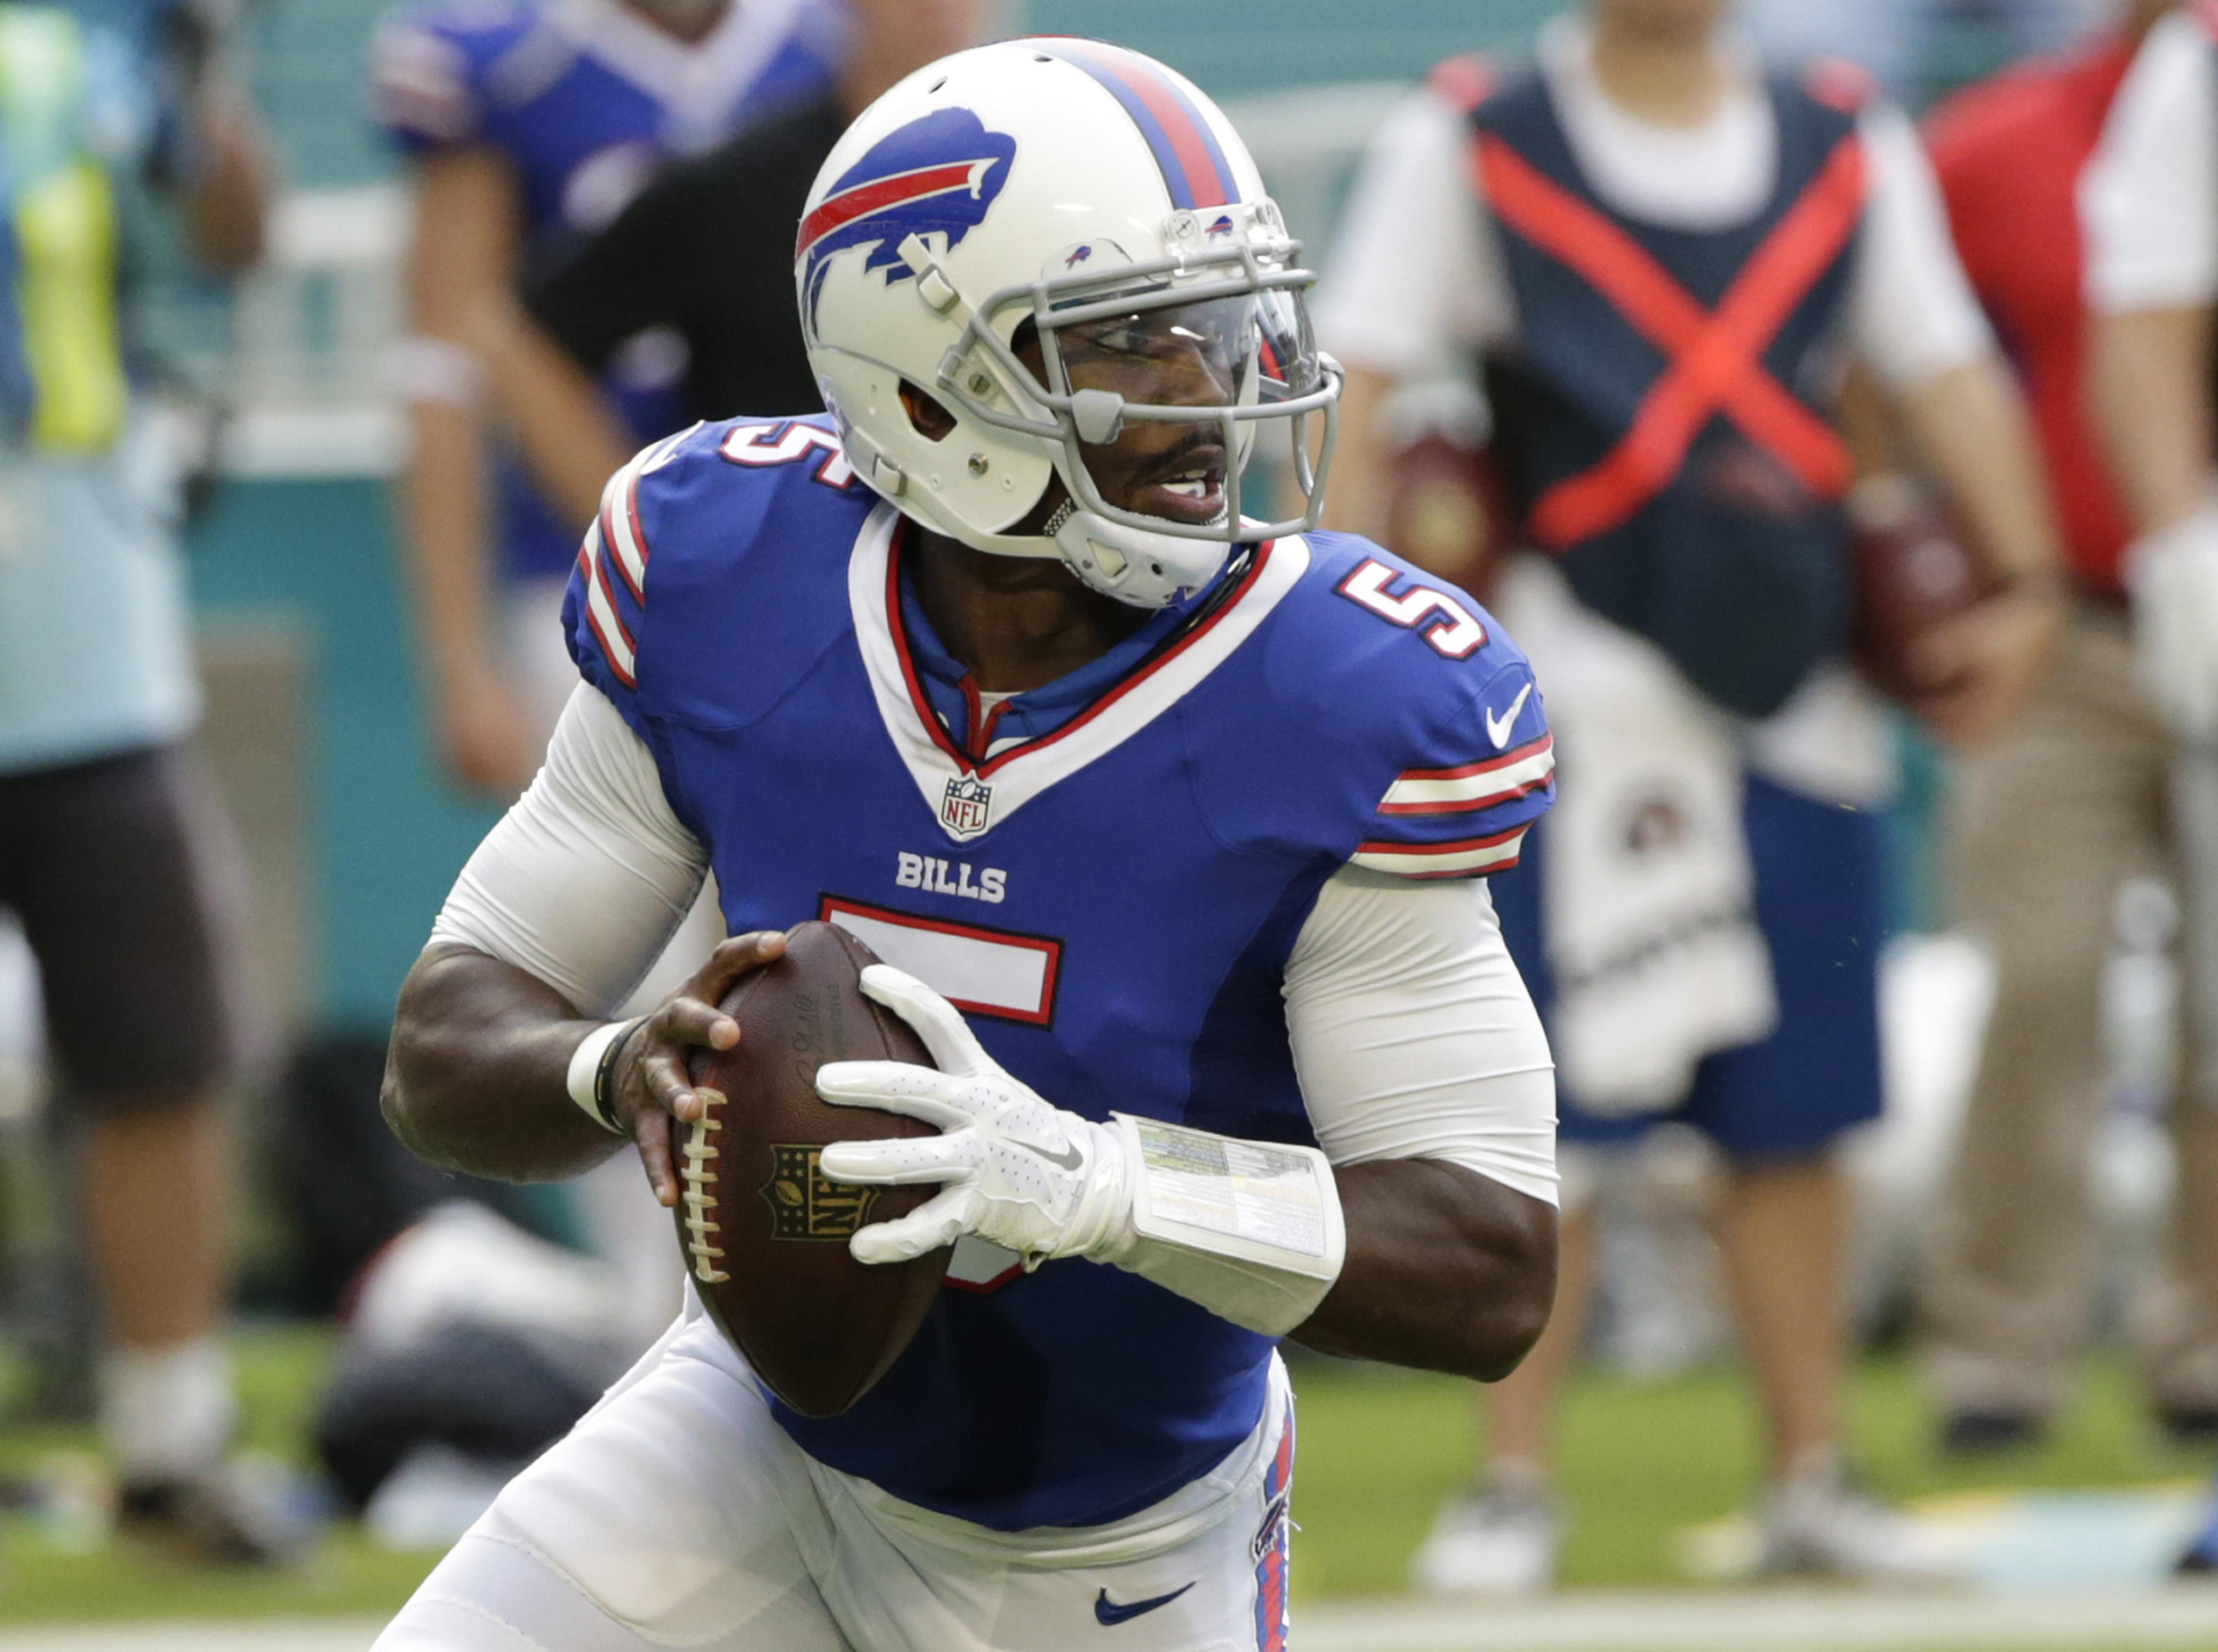 Buffalo Bills quarterback Tyrod Taylor (5) runs with the ball during the first half an NFL football game against the Miami Dolphins, Sunday, Sept. 27, 2015 in Miami Gardens, Fla. (AP Photo/Wilfredo Lee)